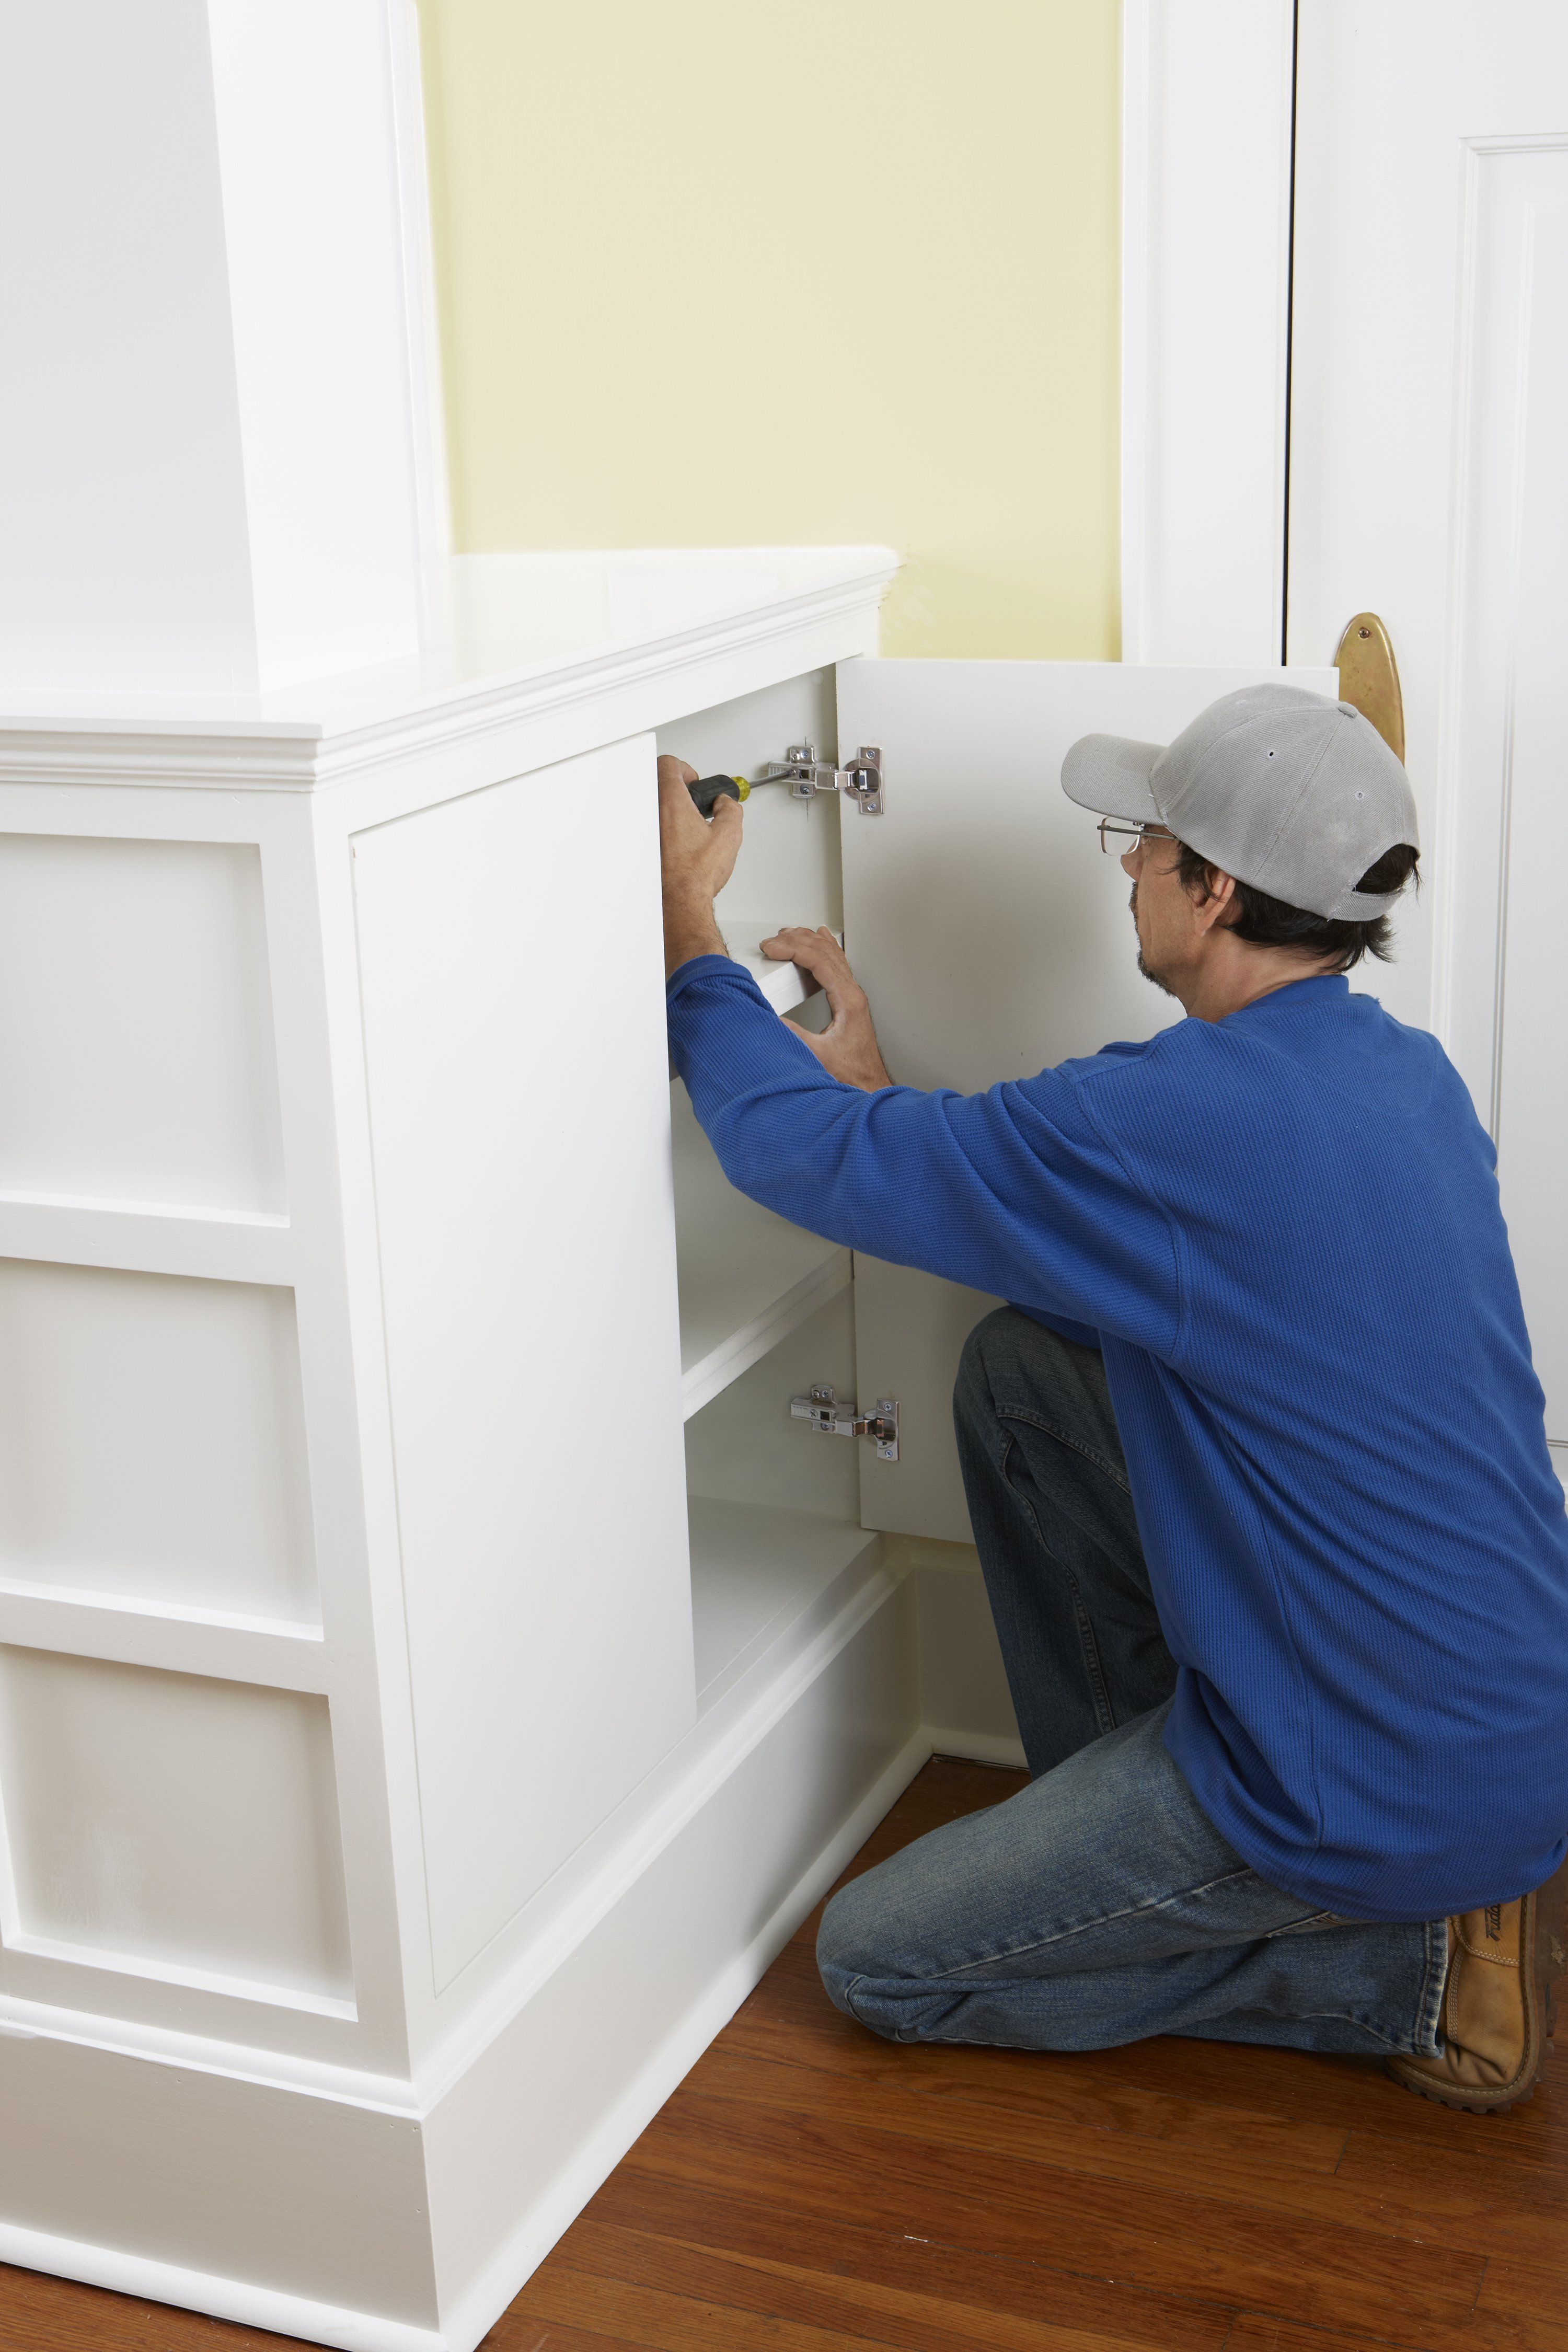 How to Install Concealed Euro-Style Cabinet Hinges   European hinges ...